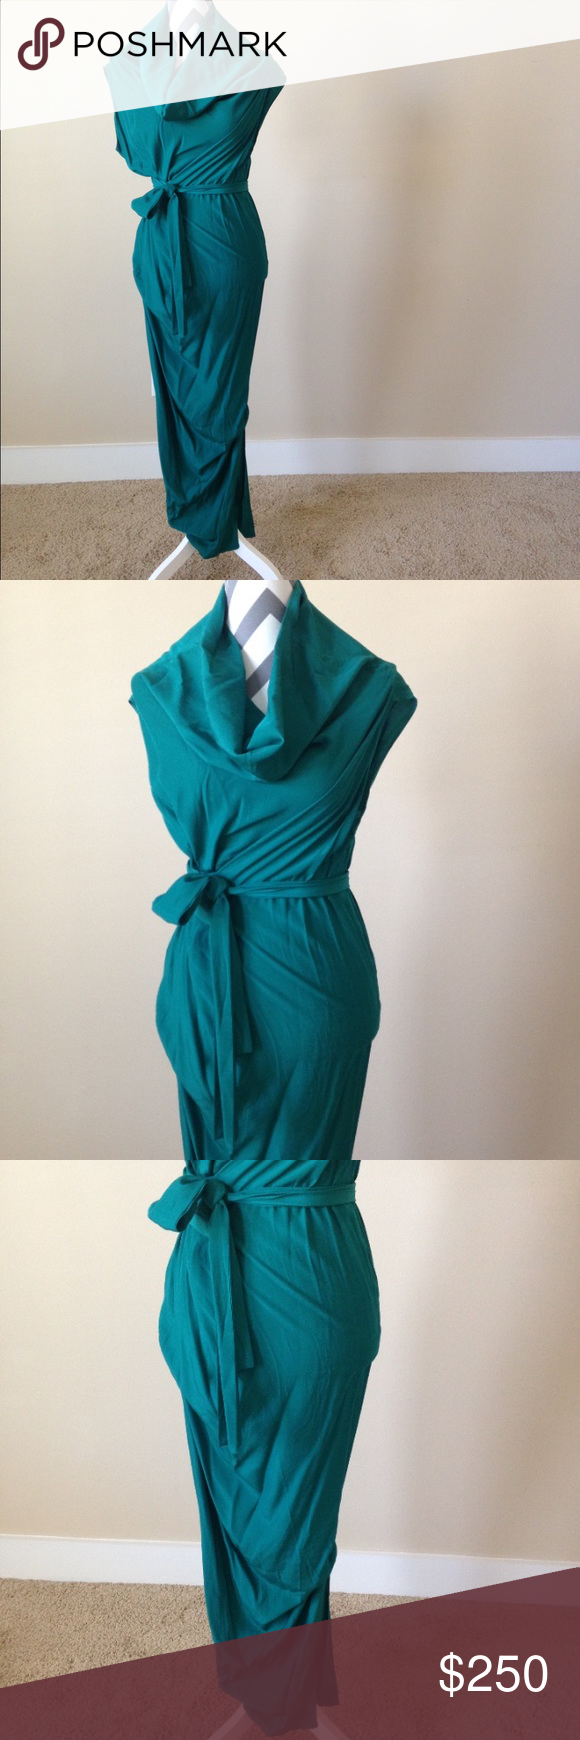 Australian Designer Dress One of a kind dress from Western Australian designer made in Australia. Unique draped gown emerald green in color, with pin tucks & slits on each side that almost goes to knee. Beautifully designed in a draped fashion with two sewn in belt ties to tie this on waist to your liking. Beautifully done. Never worn, comes in original dress bag. Australian size 8, which is an American size 00/0/XS (I am a 00 and this fit me perfectly when I tried it on). Dresses Maxi